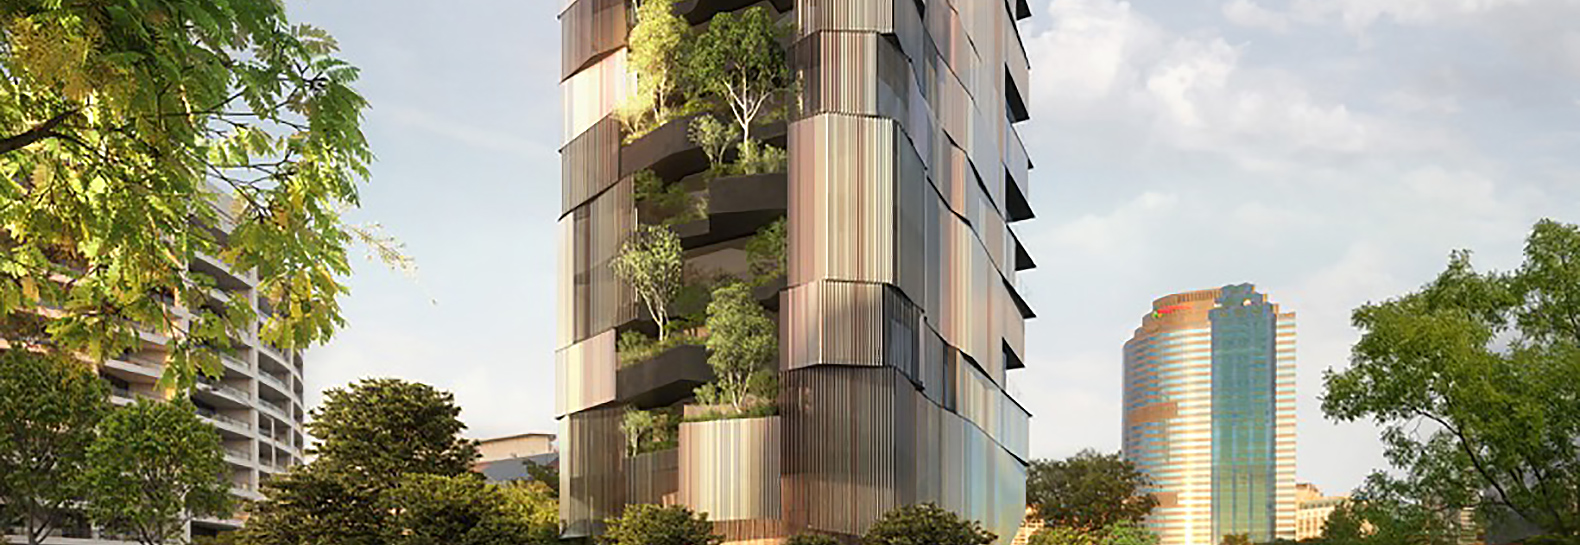 14-story apartment building in Brisbane has a vertical forest growing up its exterior